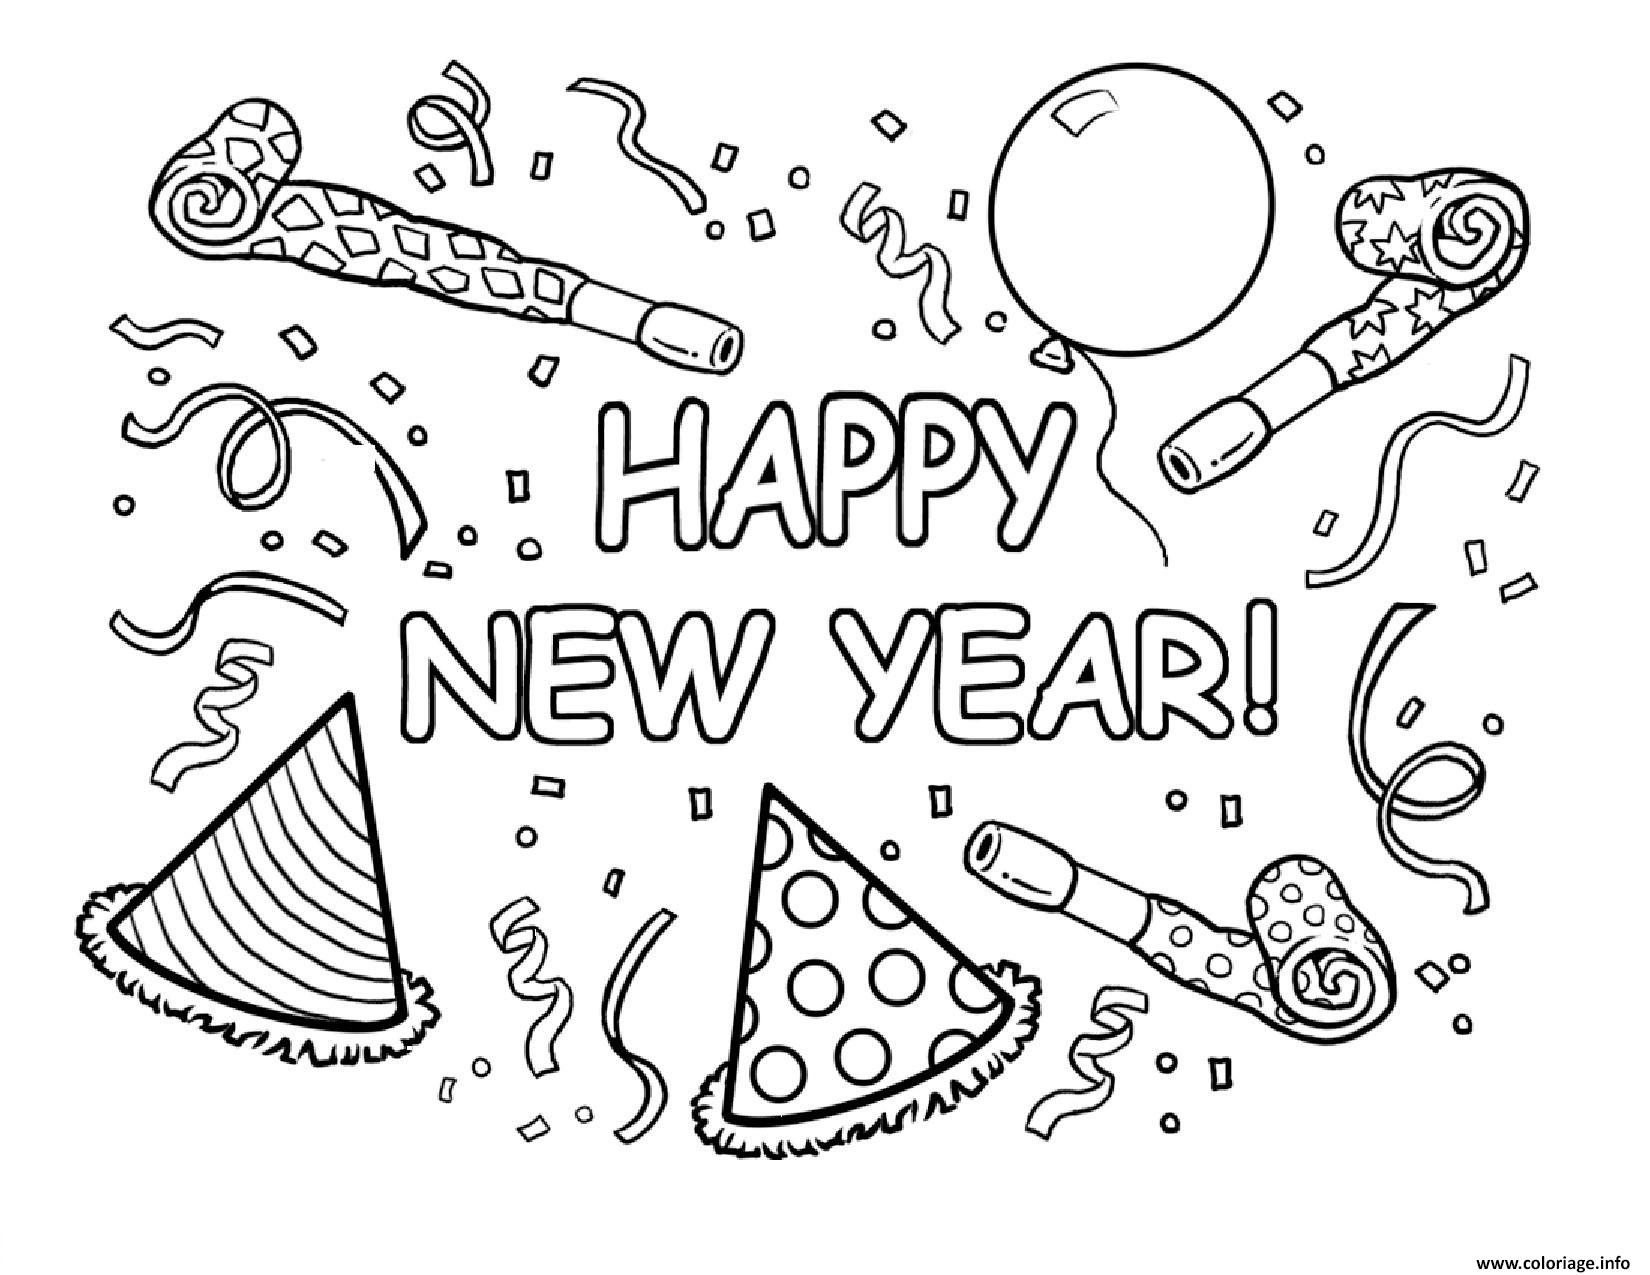 Dessin Happy New Year Printable Coloriage Gratuit à Imprimer